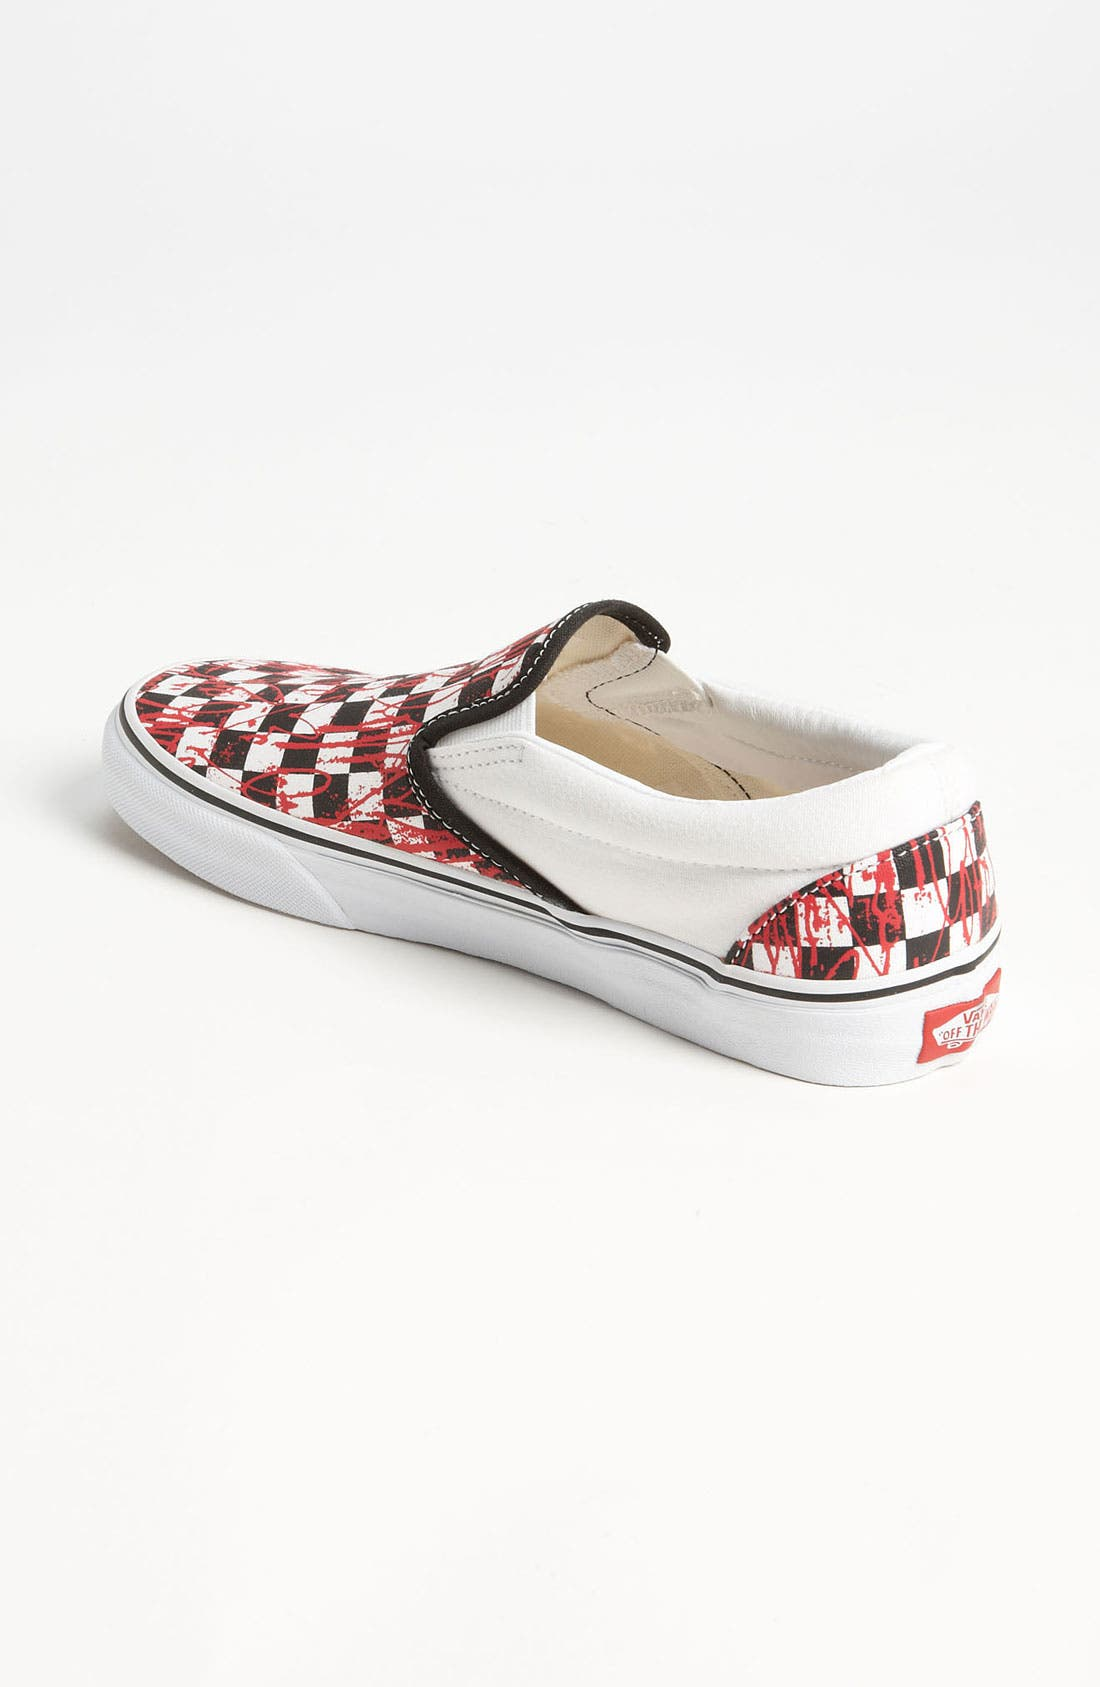 Alternate Image 2  - Vans 'Love Me' Sneaker (Women)